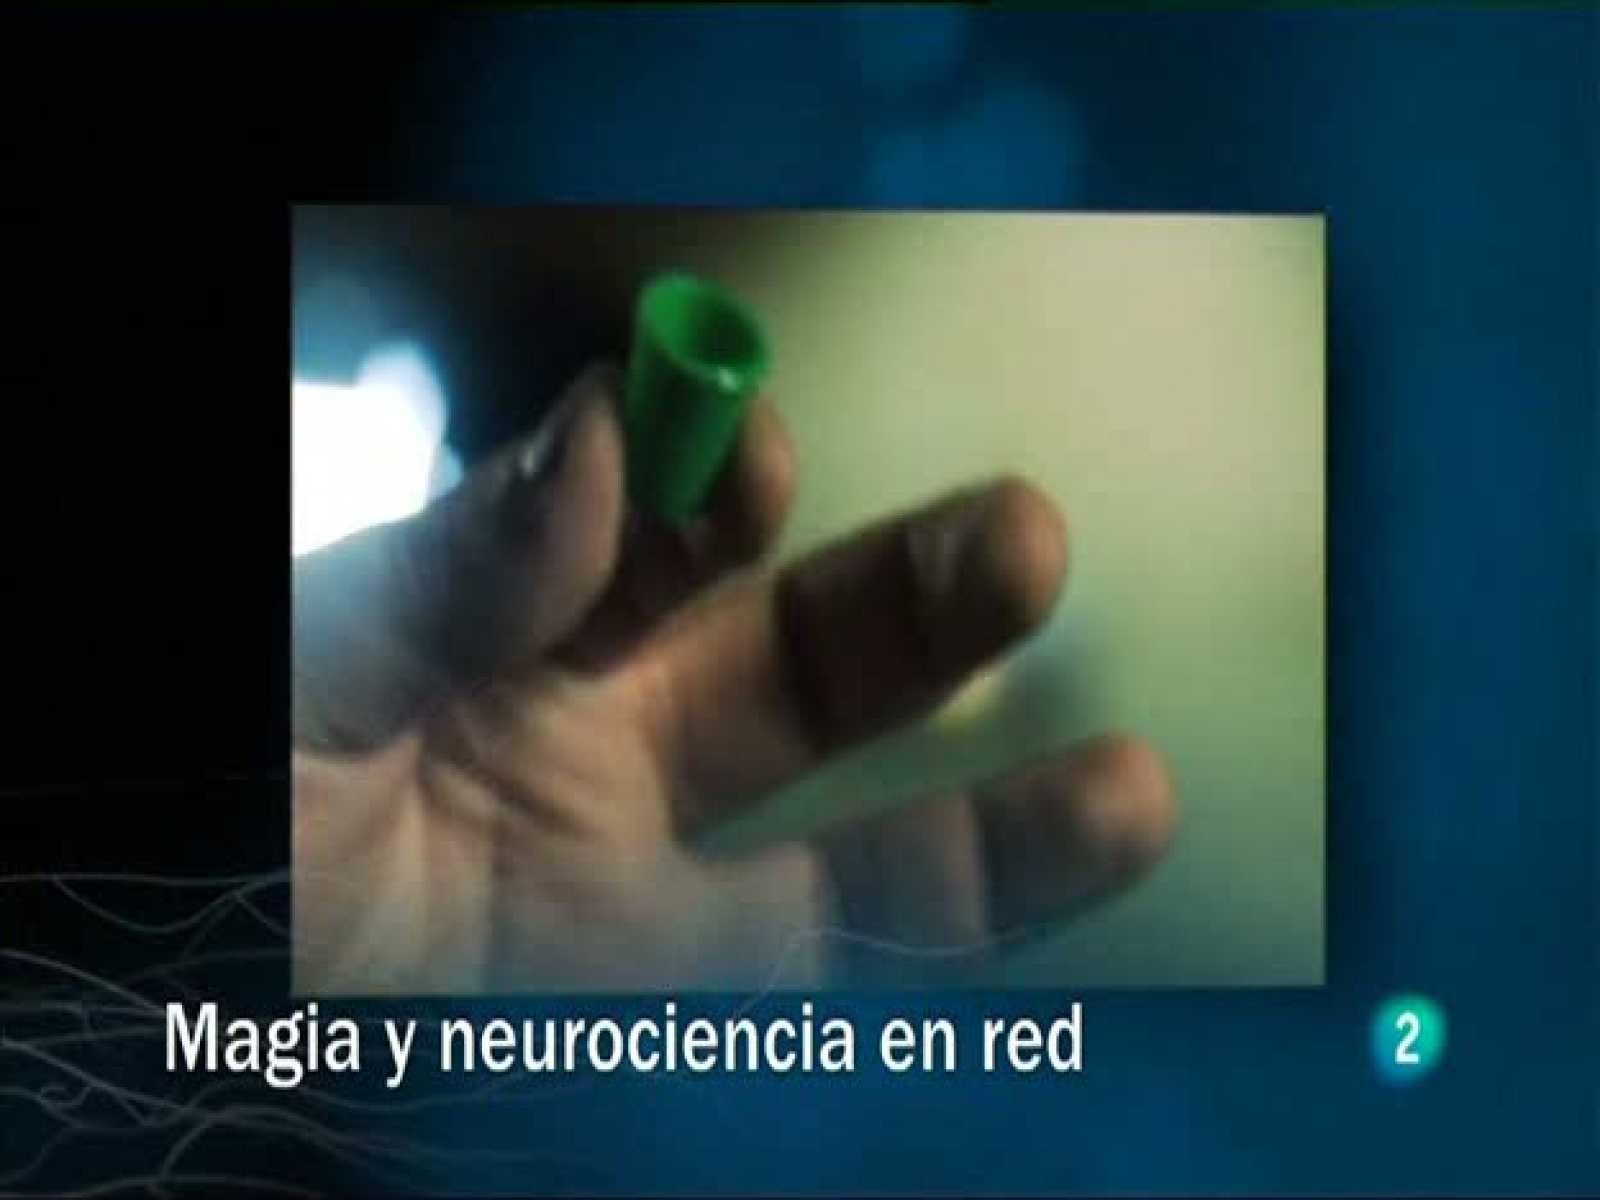 Redes (13/06/10): Magia y neurociencia en red